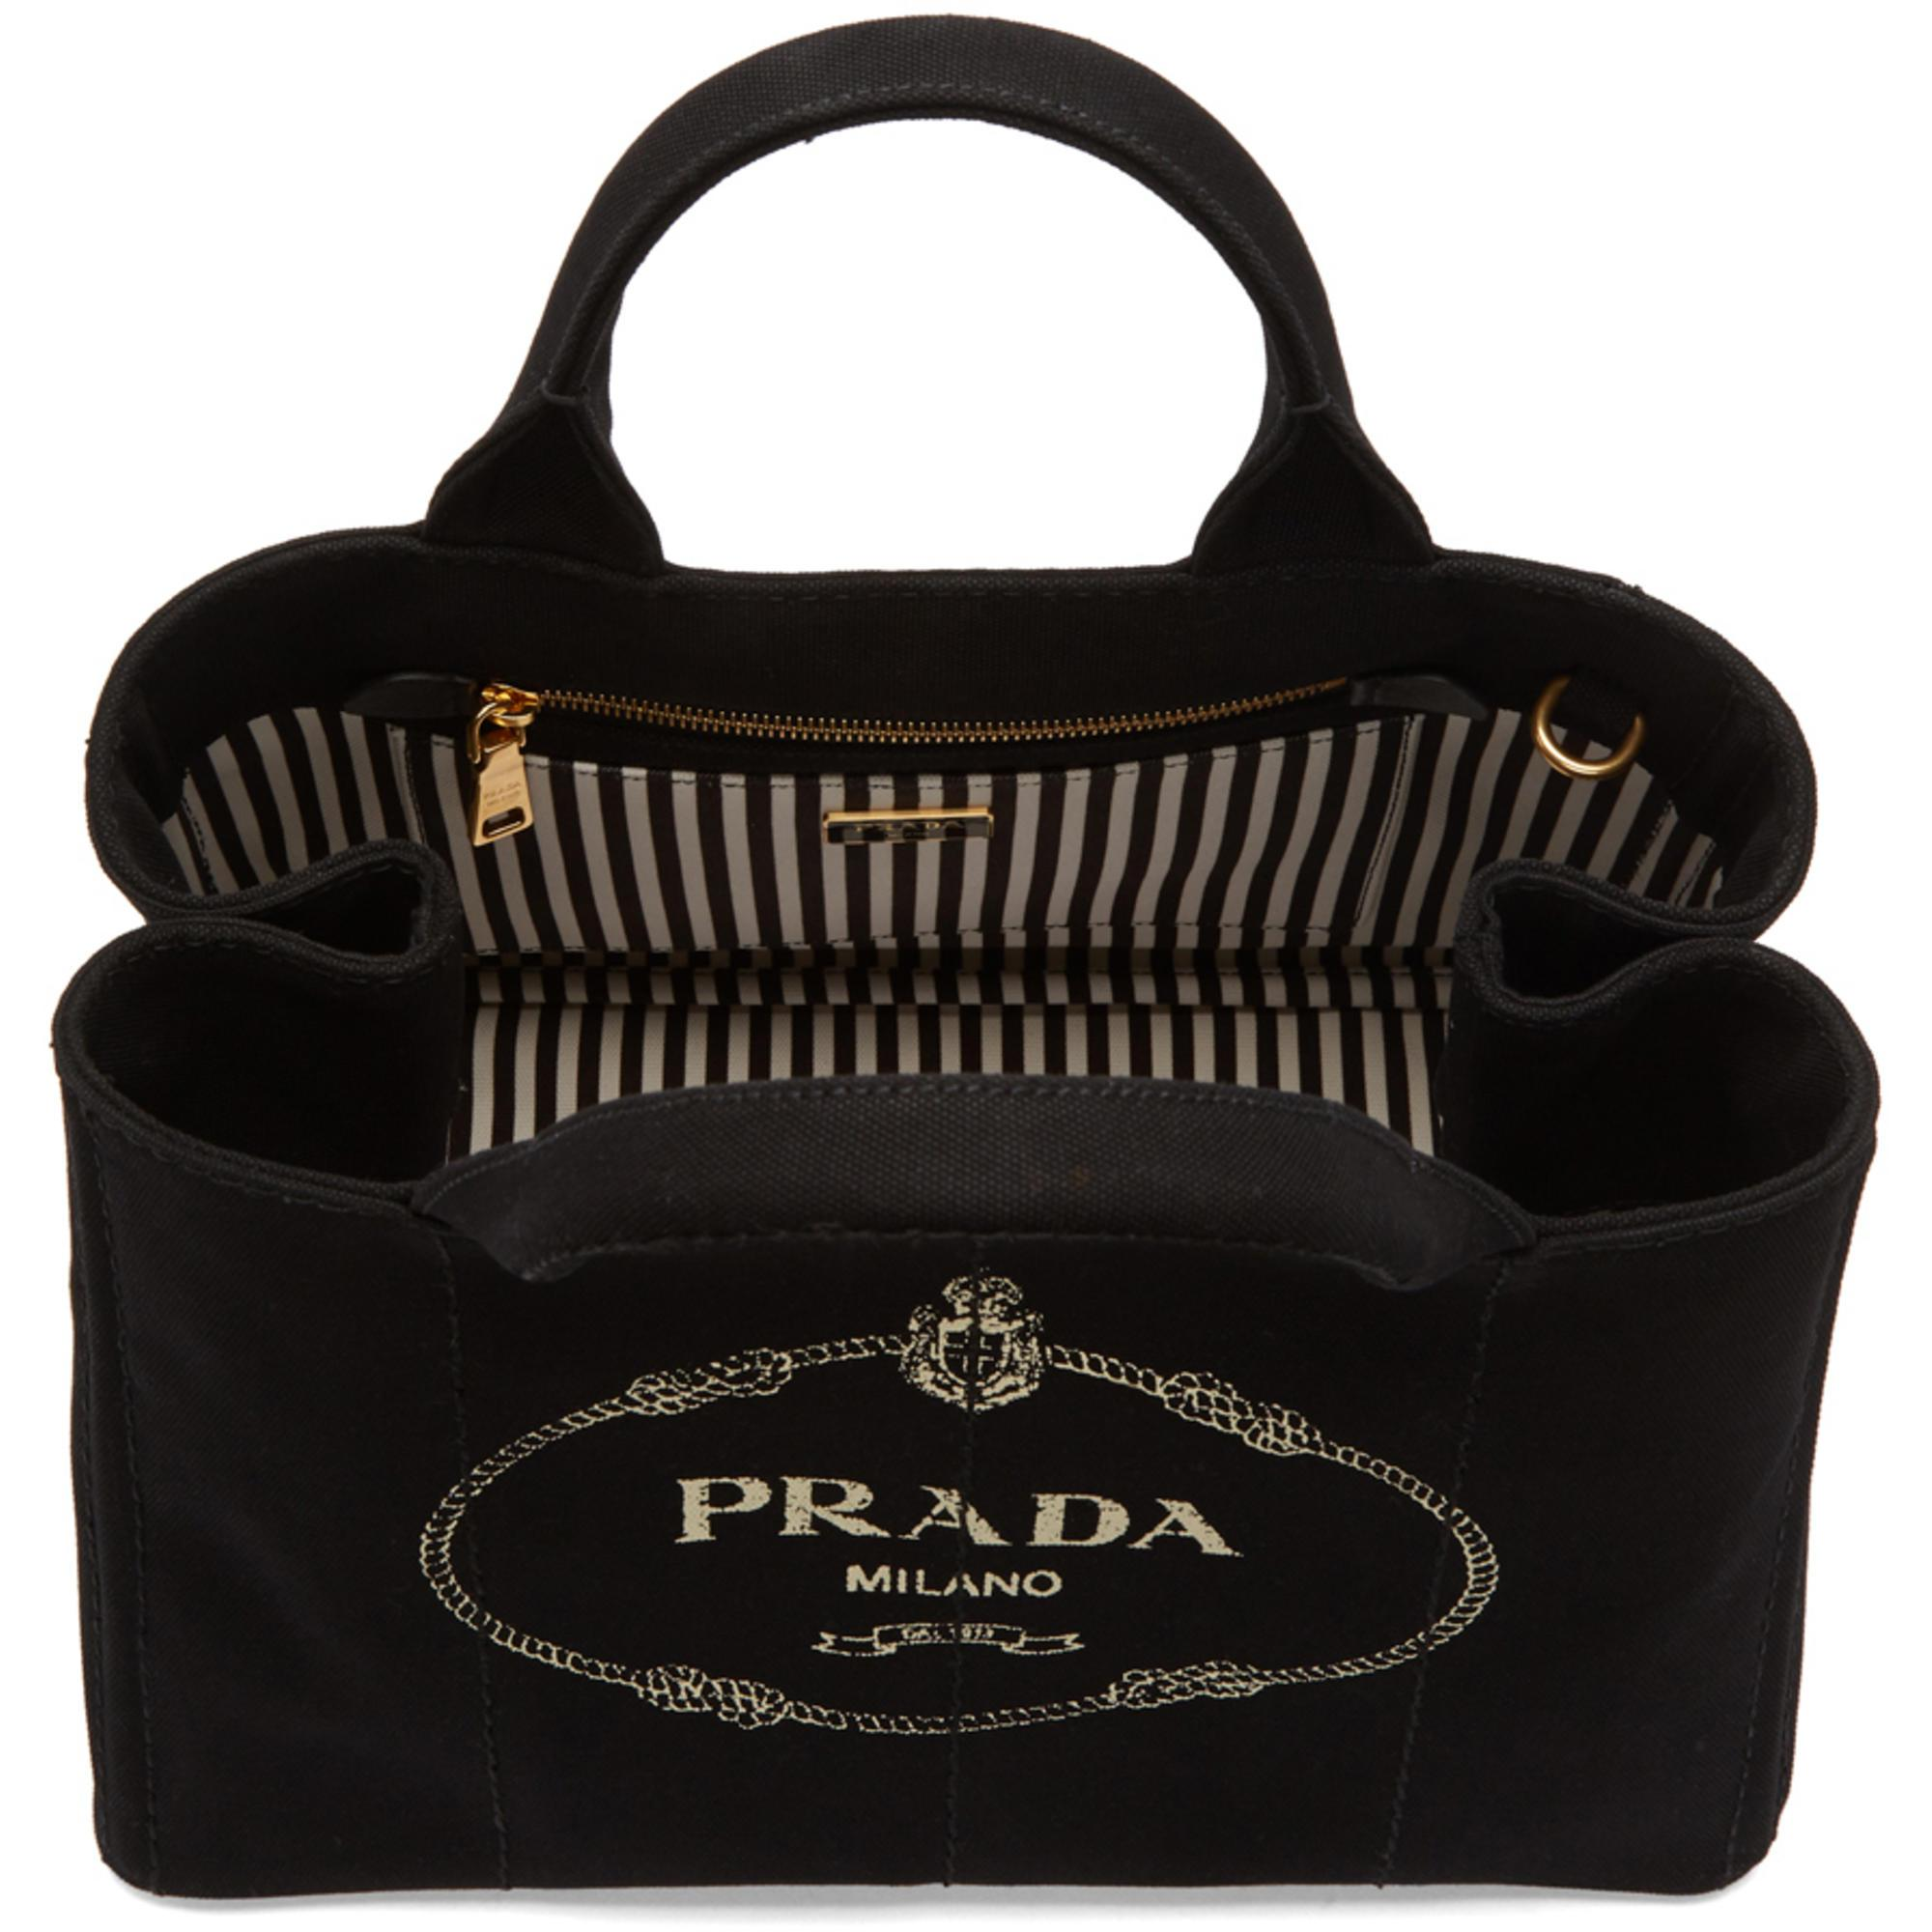 971ea1a03b54 ... authentic discount code for prada black large gardener tote in black  lyst 60cc3 ca56d 6680d 146da